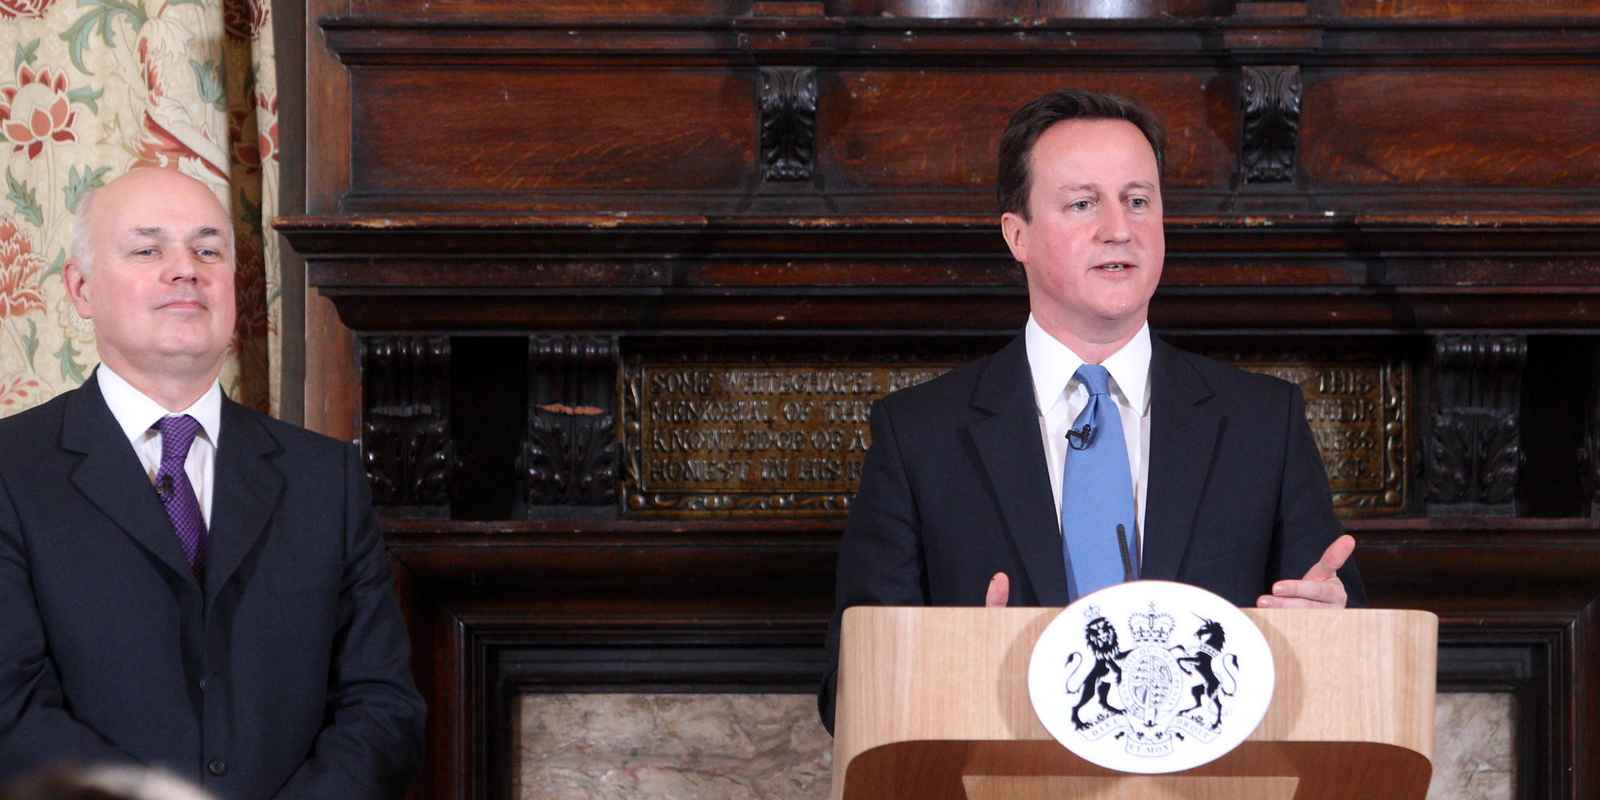 Prime Minister David Cameron Visits East London To Make A Speech On Welfare